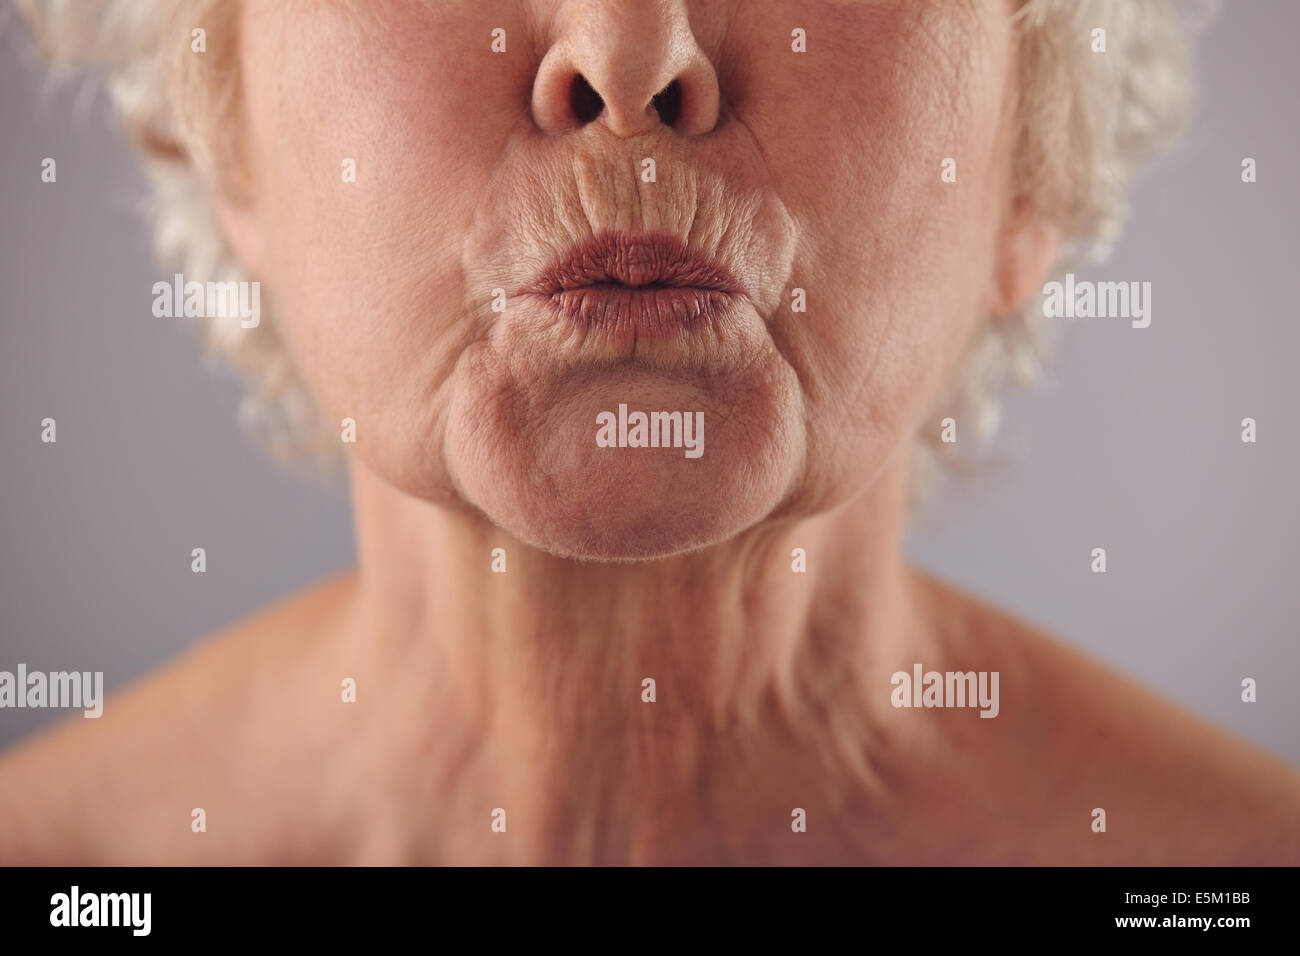 Close-up portrait of mature woman puckering lips against grey background. Senior woman grimacing. Focus on lips. - Stock Image